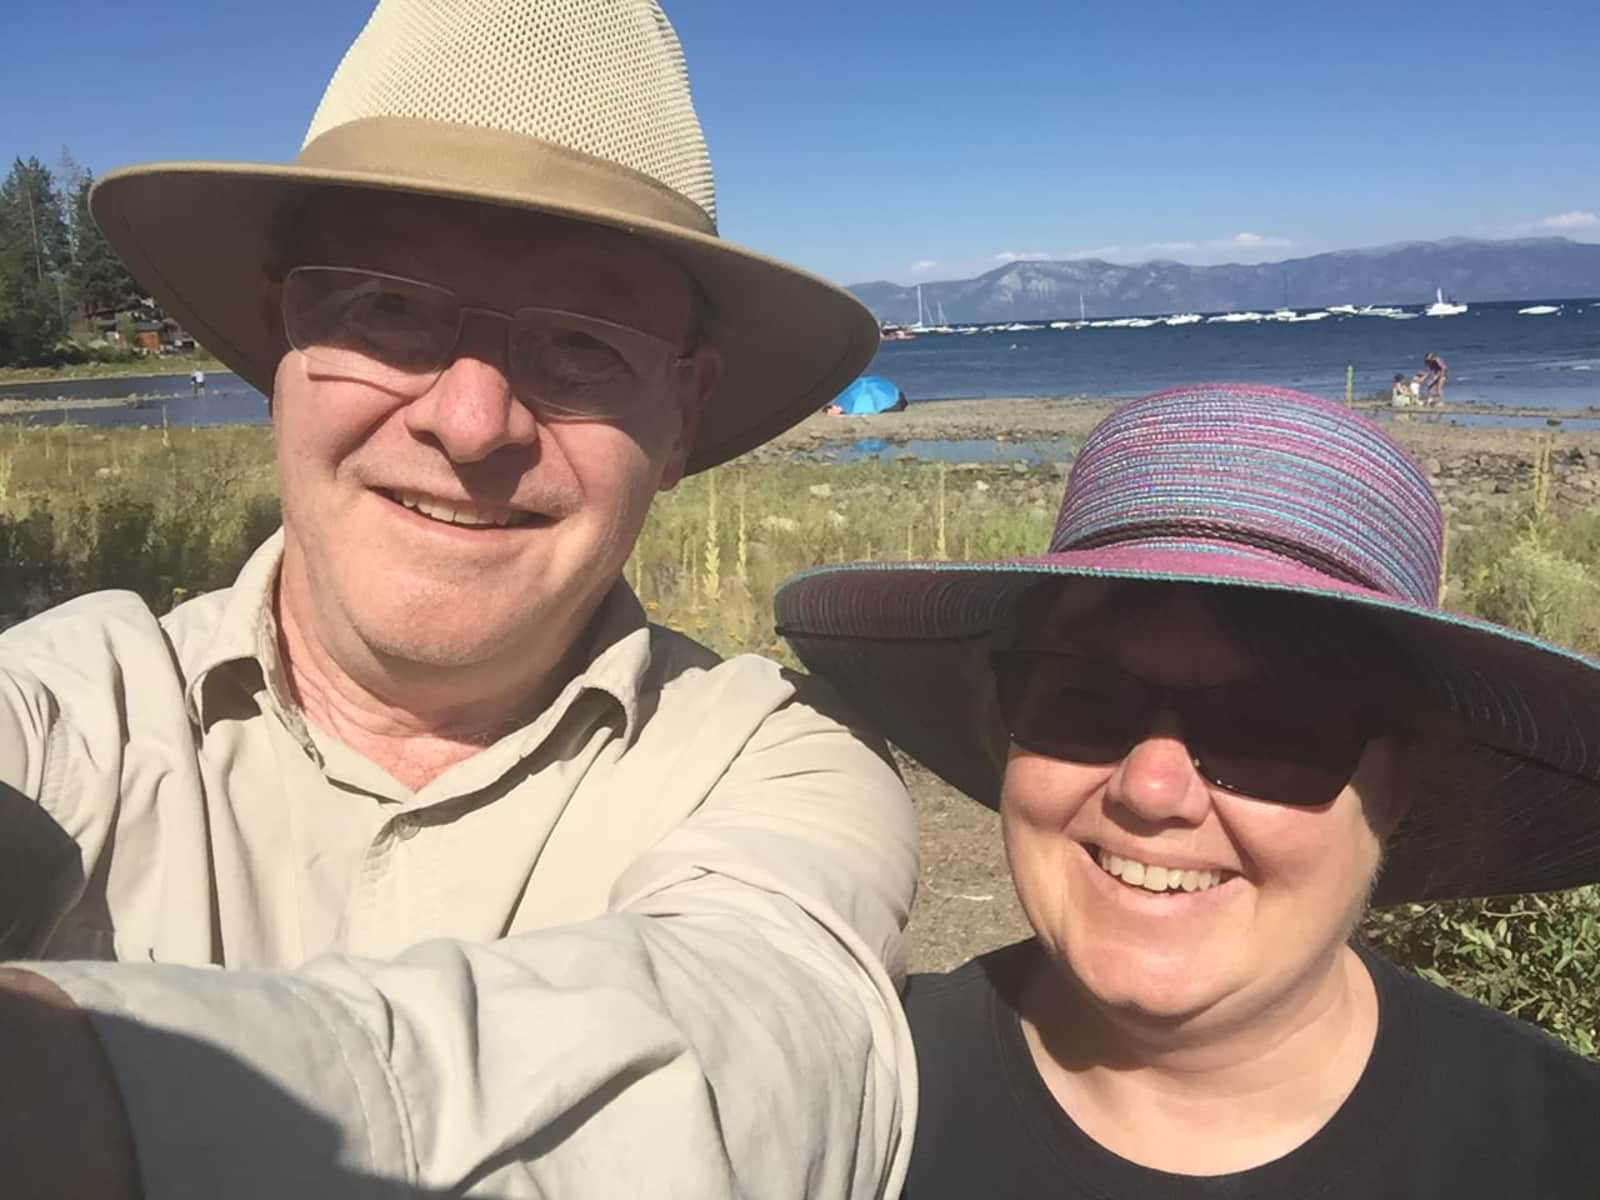 Krista & bob & Bob from Grass Valley, California, United States